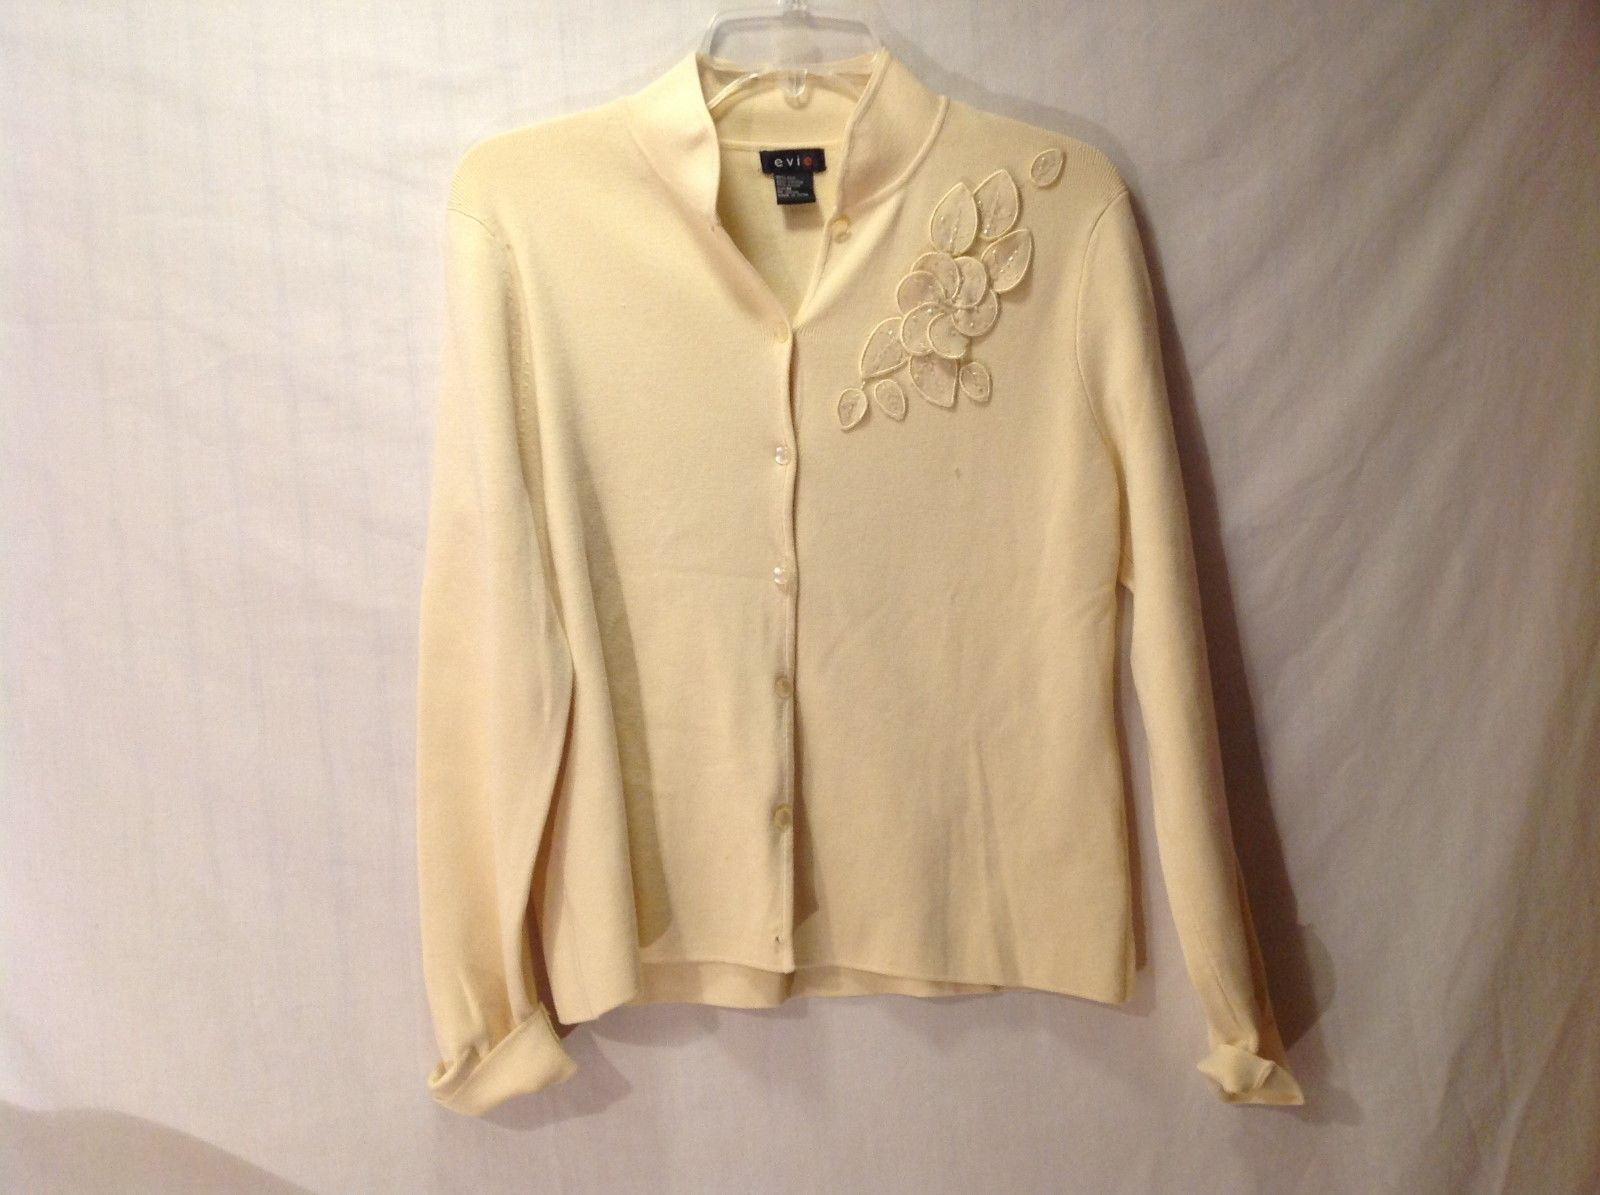 Women's Evie light yellow think long sleeve shirt with flowers